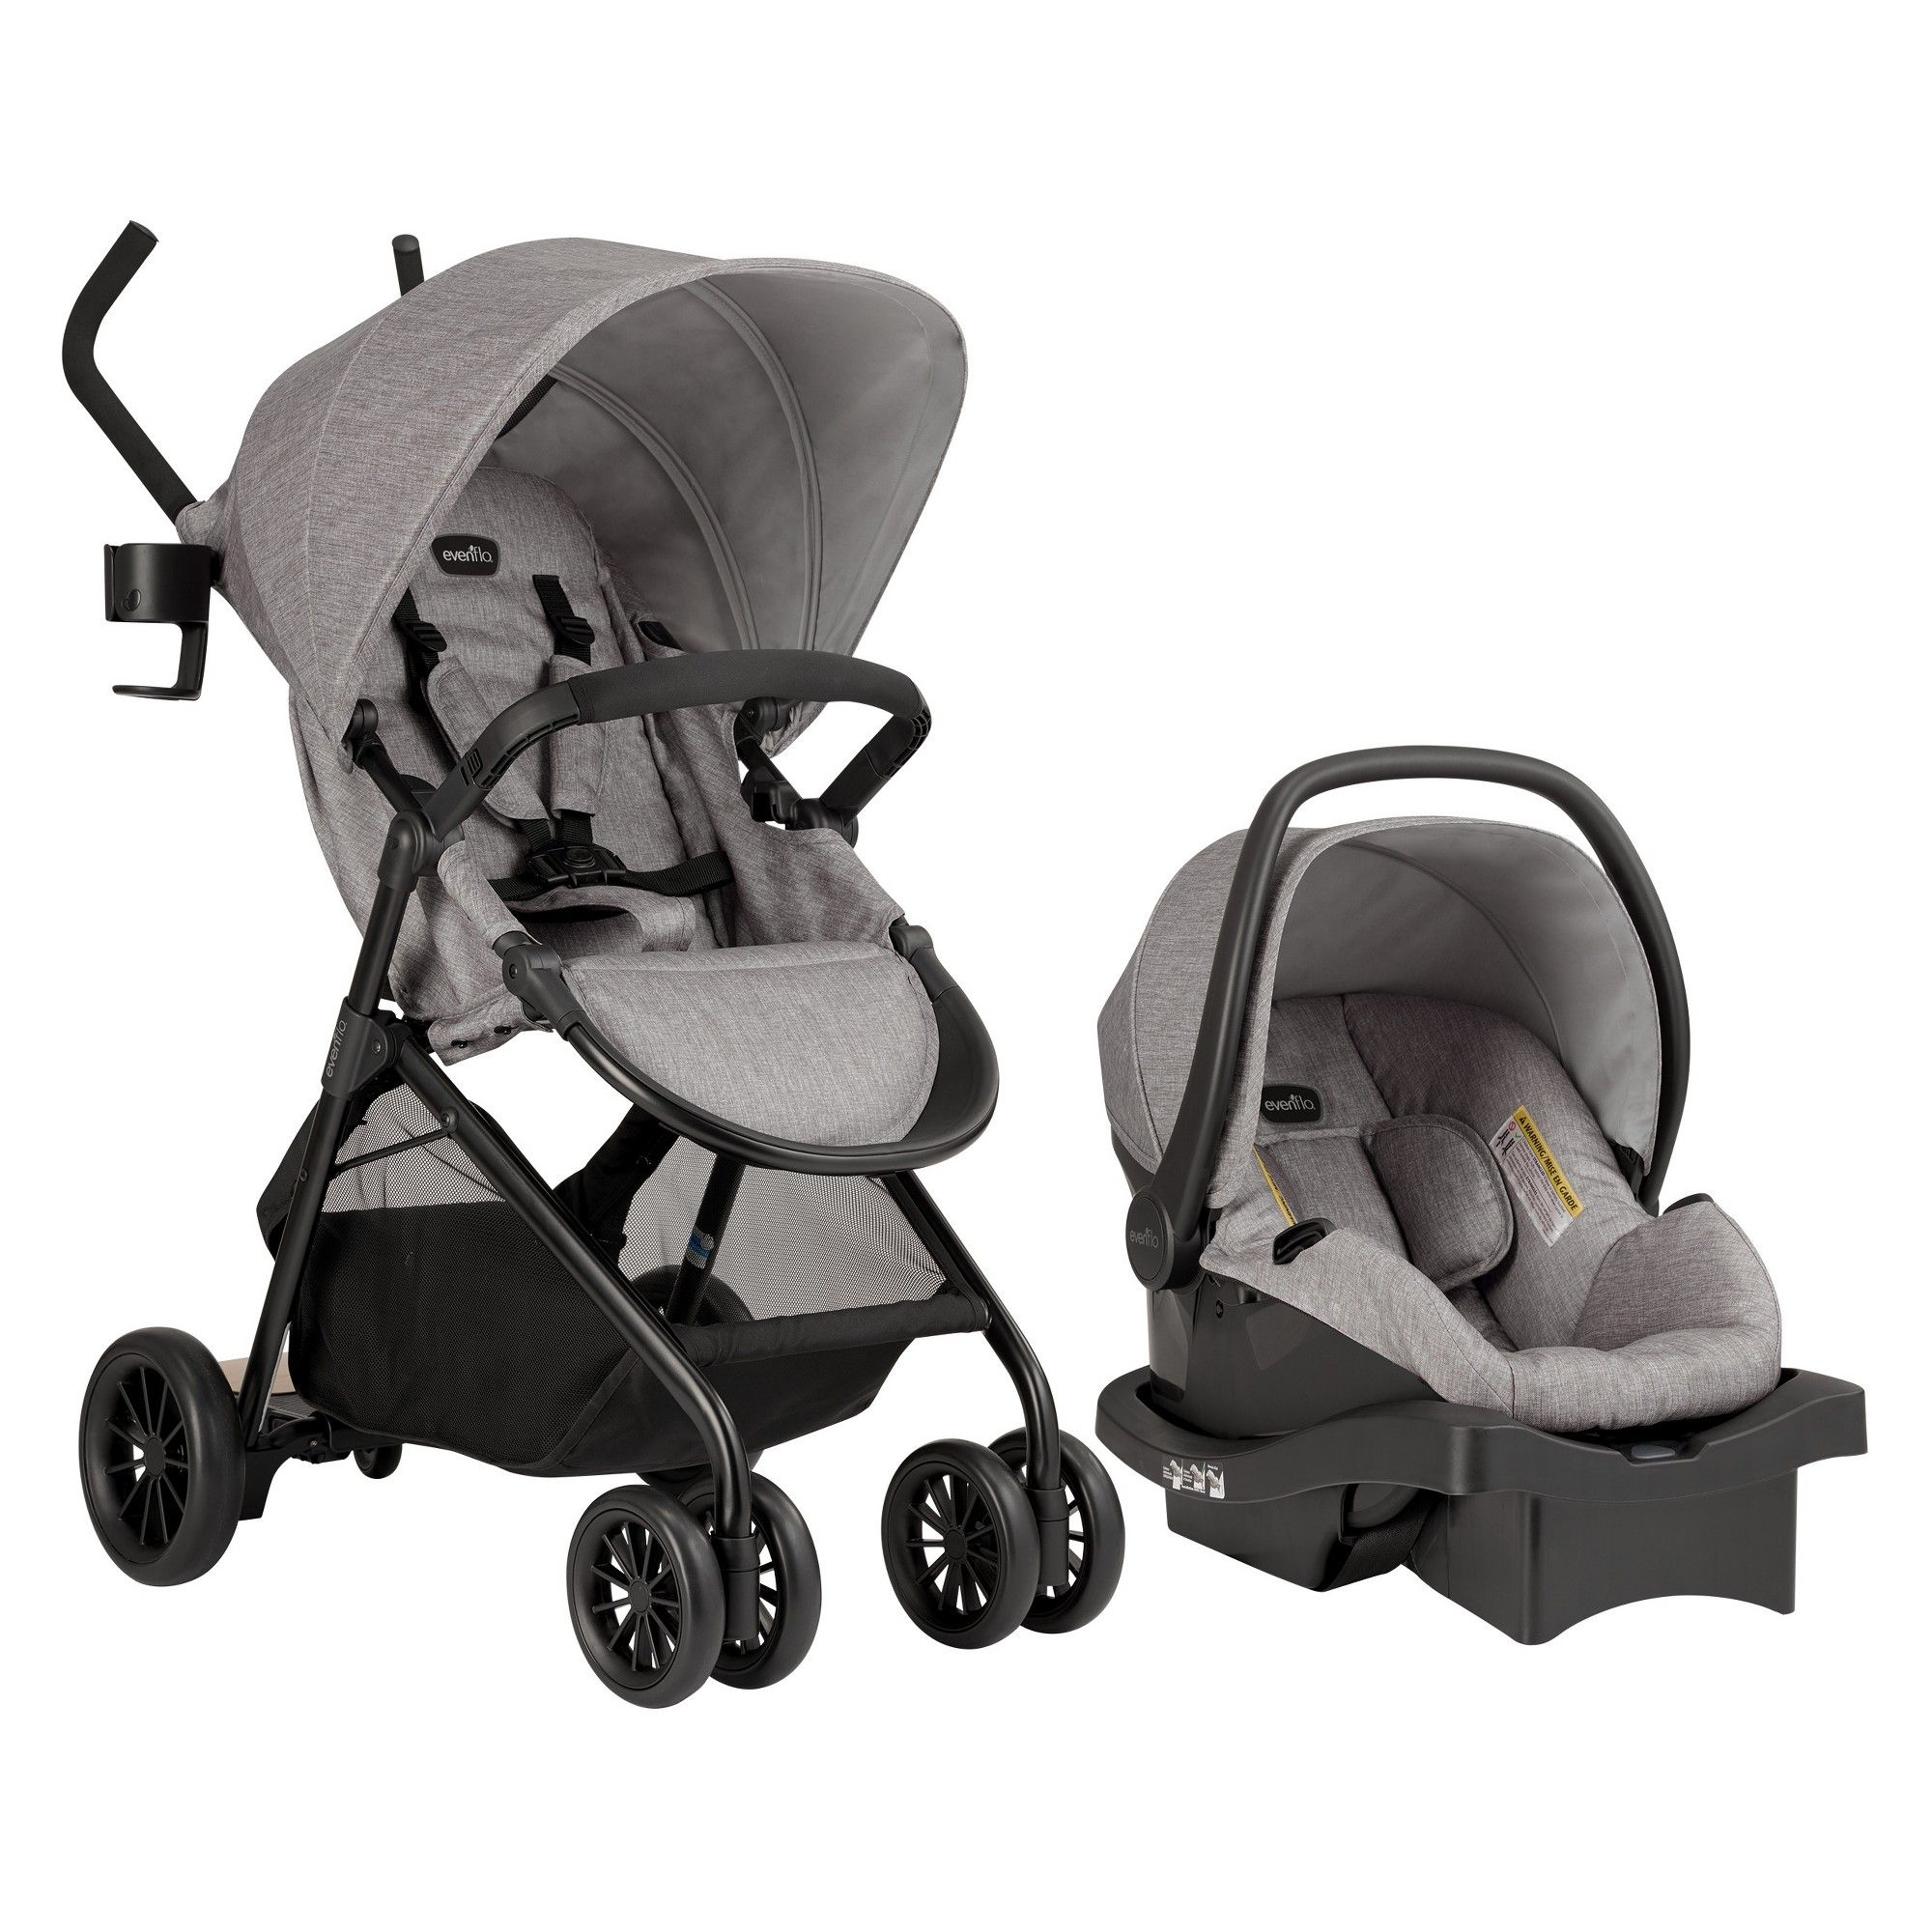 Evenflo Sibby Travel System Mineral Gray Travel system